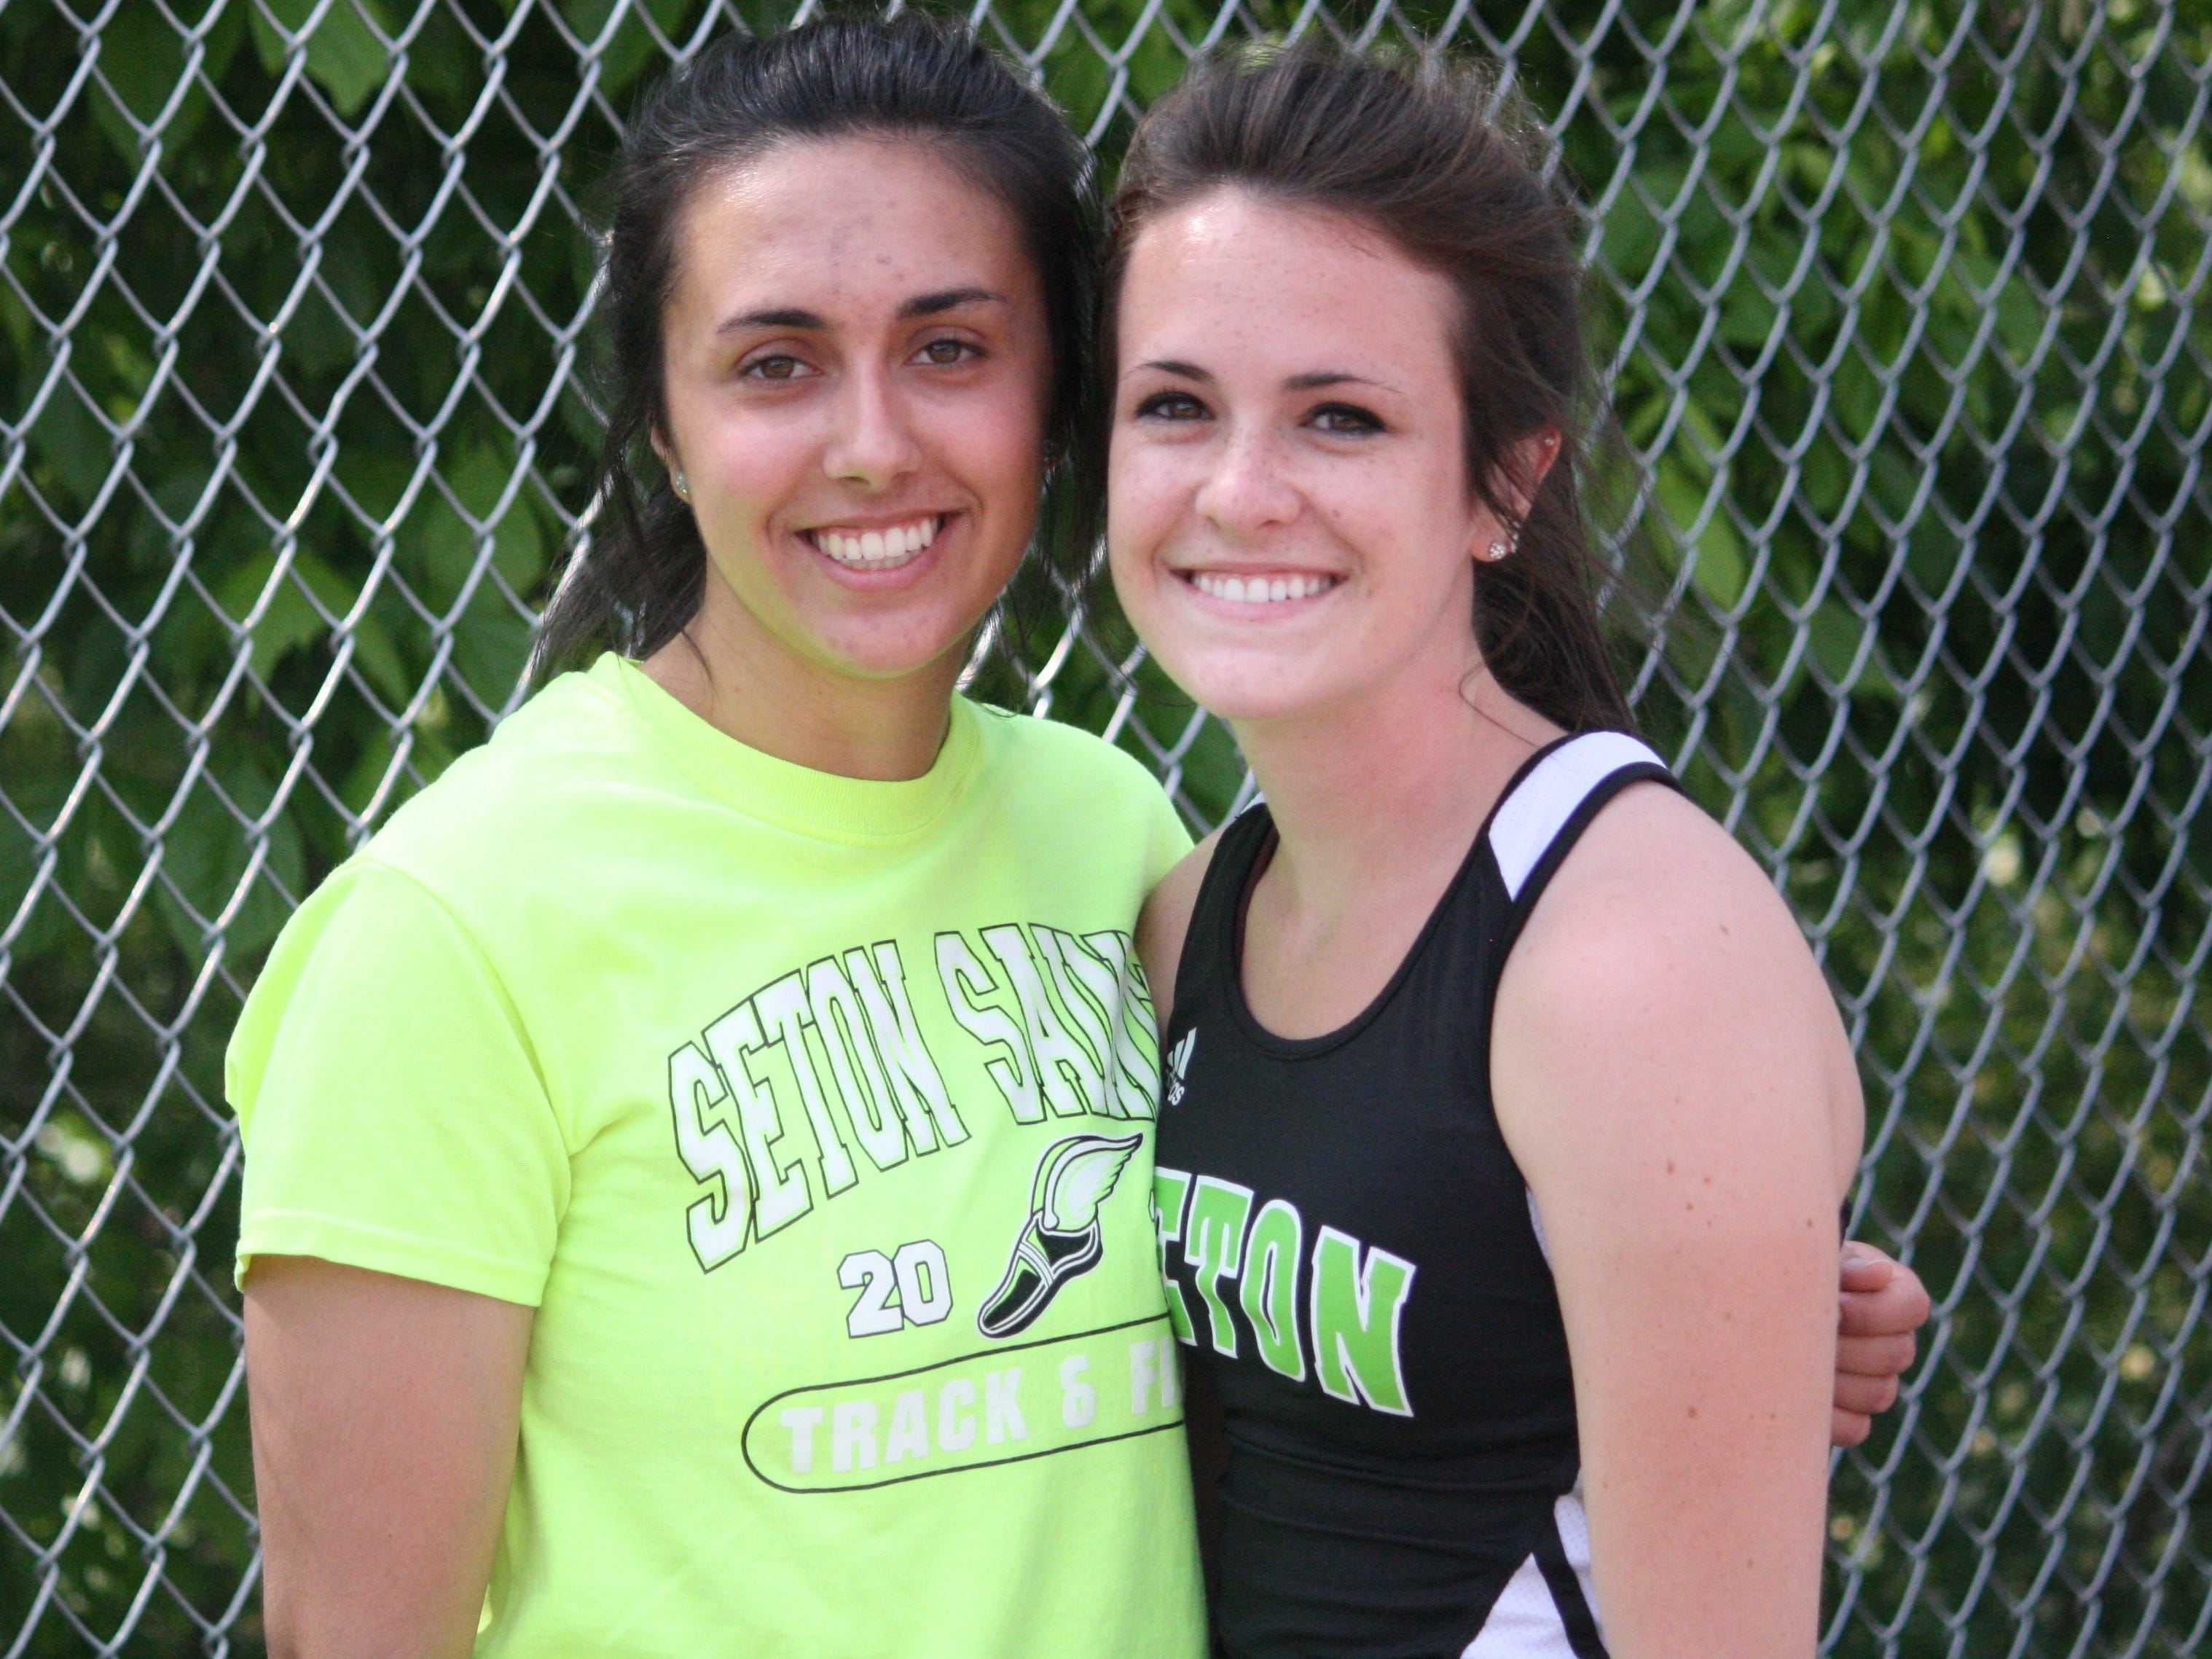 Seton High School seniors Katie Jacobs, left, and Lauren Lipps run at the GGCL track and field championships May 15 at La Salle.